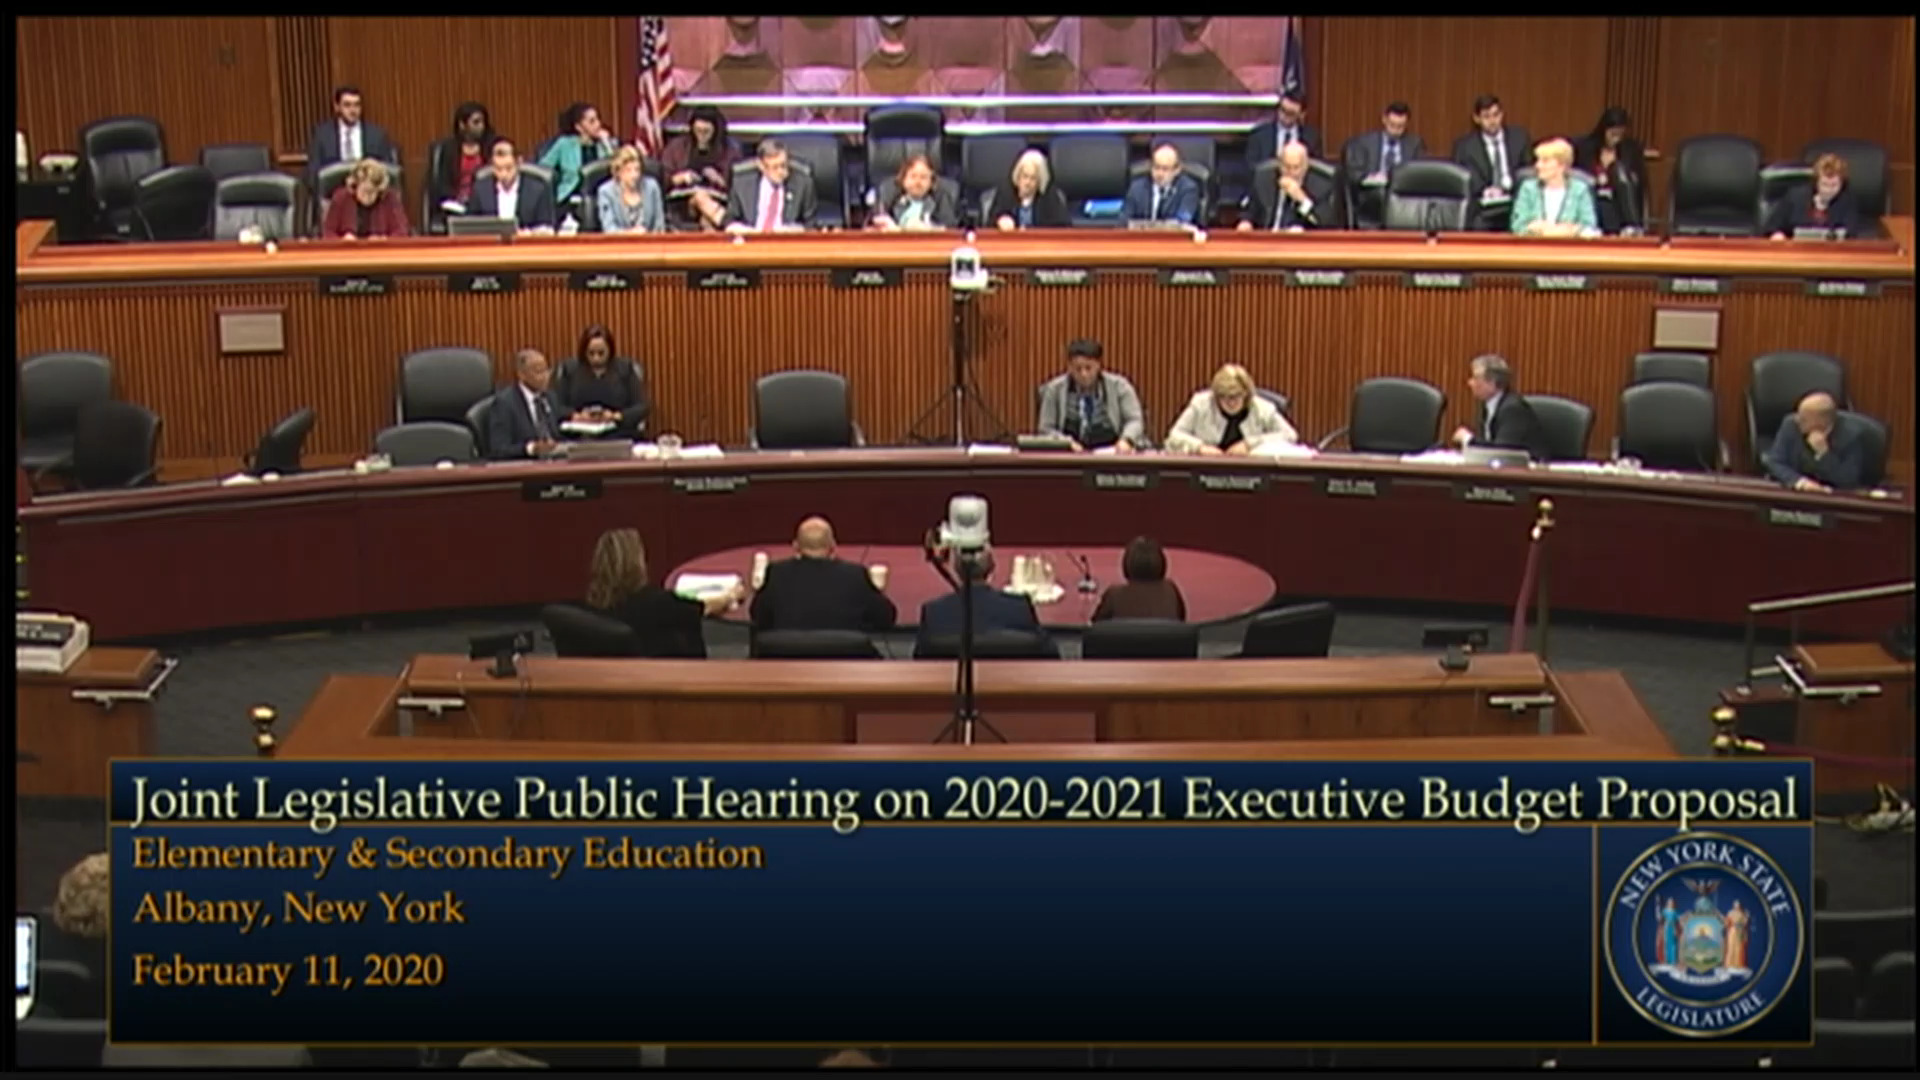 2020 Joint Budget Hearing on Elementary and Secondary Education